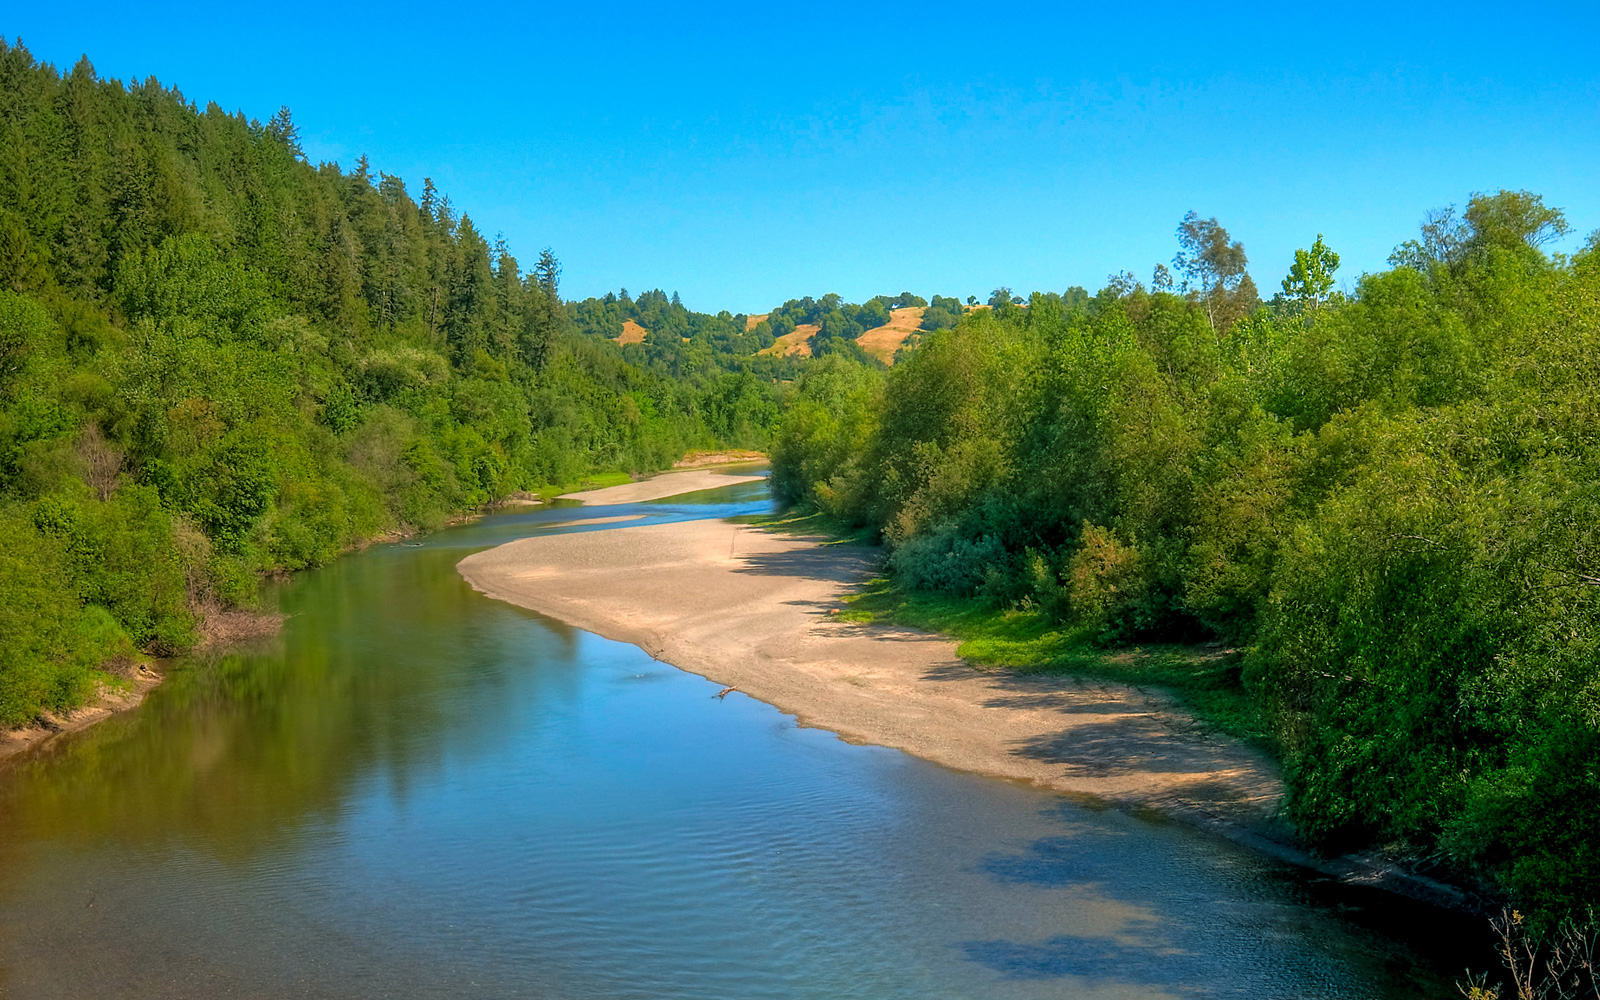 California's Russian River on a sunny day